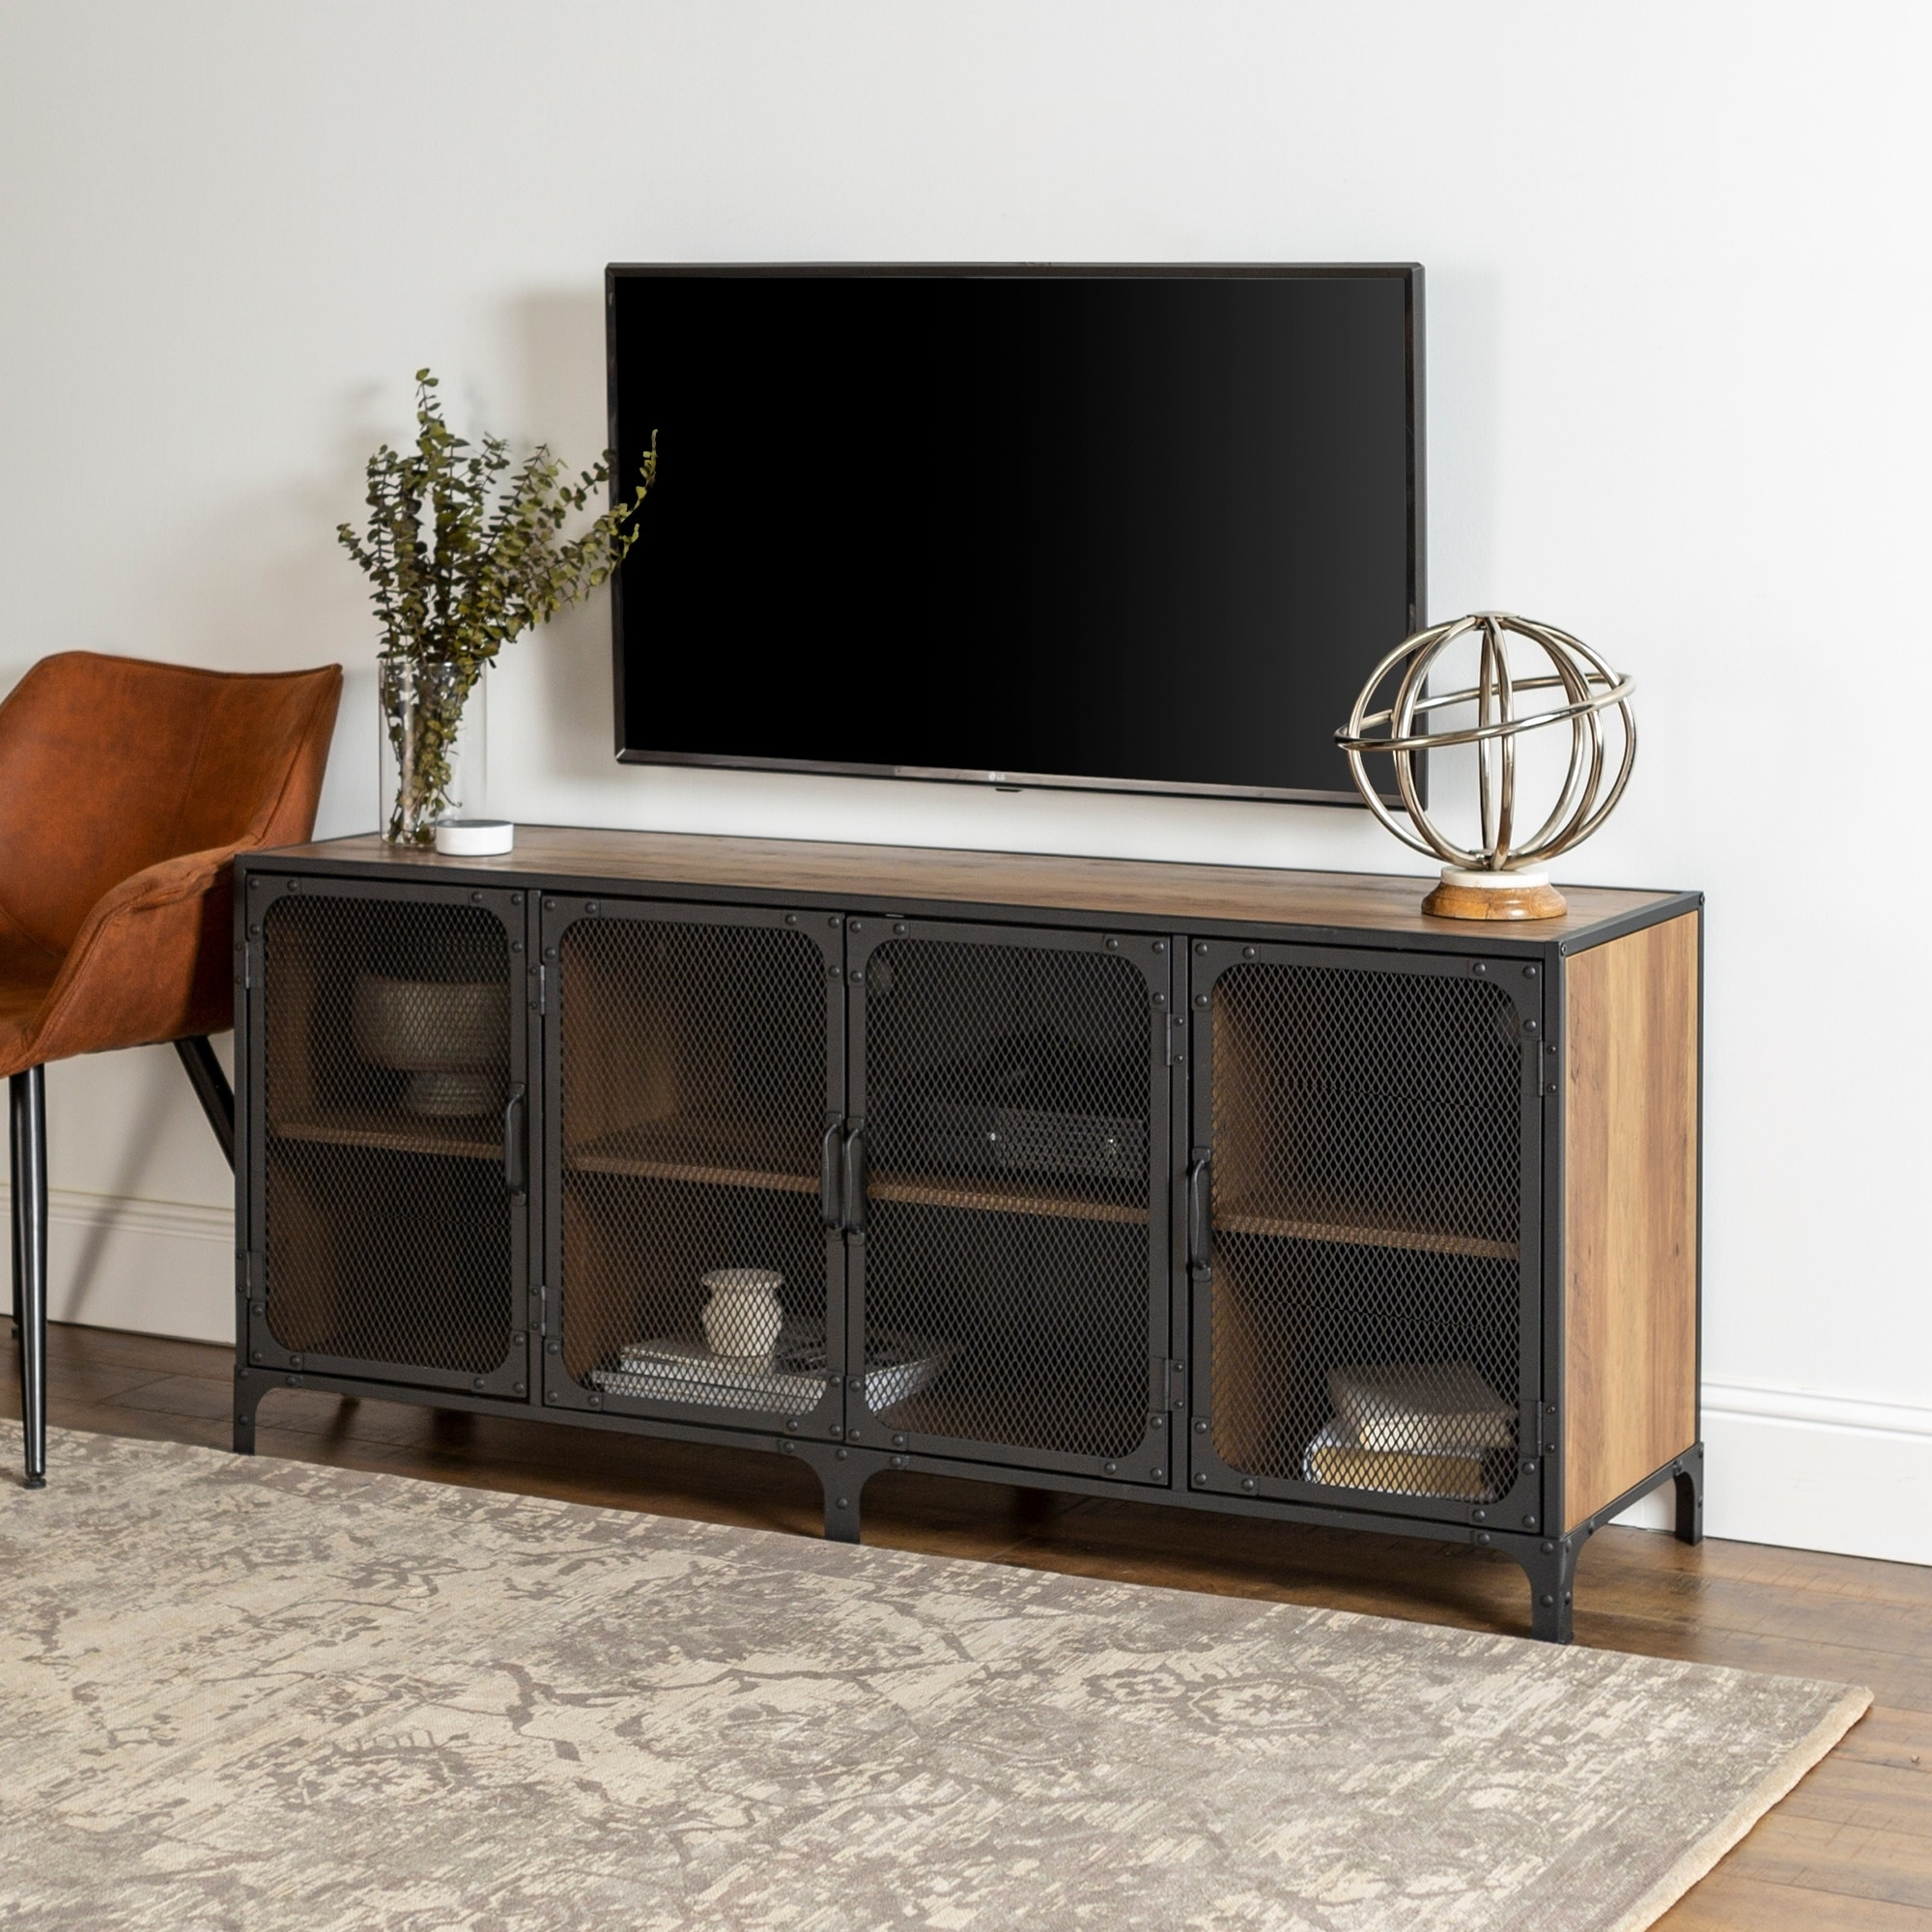 Astounding Carbon Loft Pierpont Mesh Door Industrial Tv Stand Console 60 X 16 X 26H Download Free Architecture Designs Photstoregrimeyleaguecom